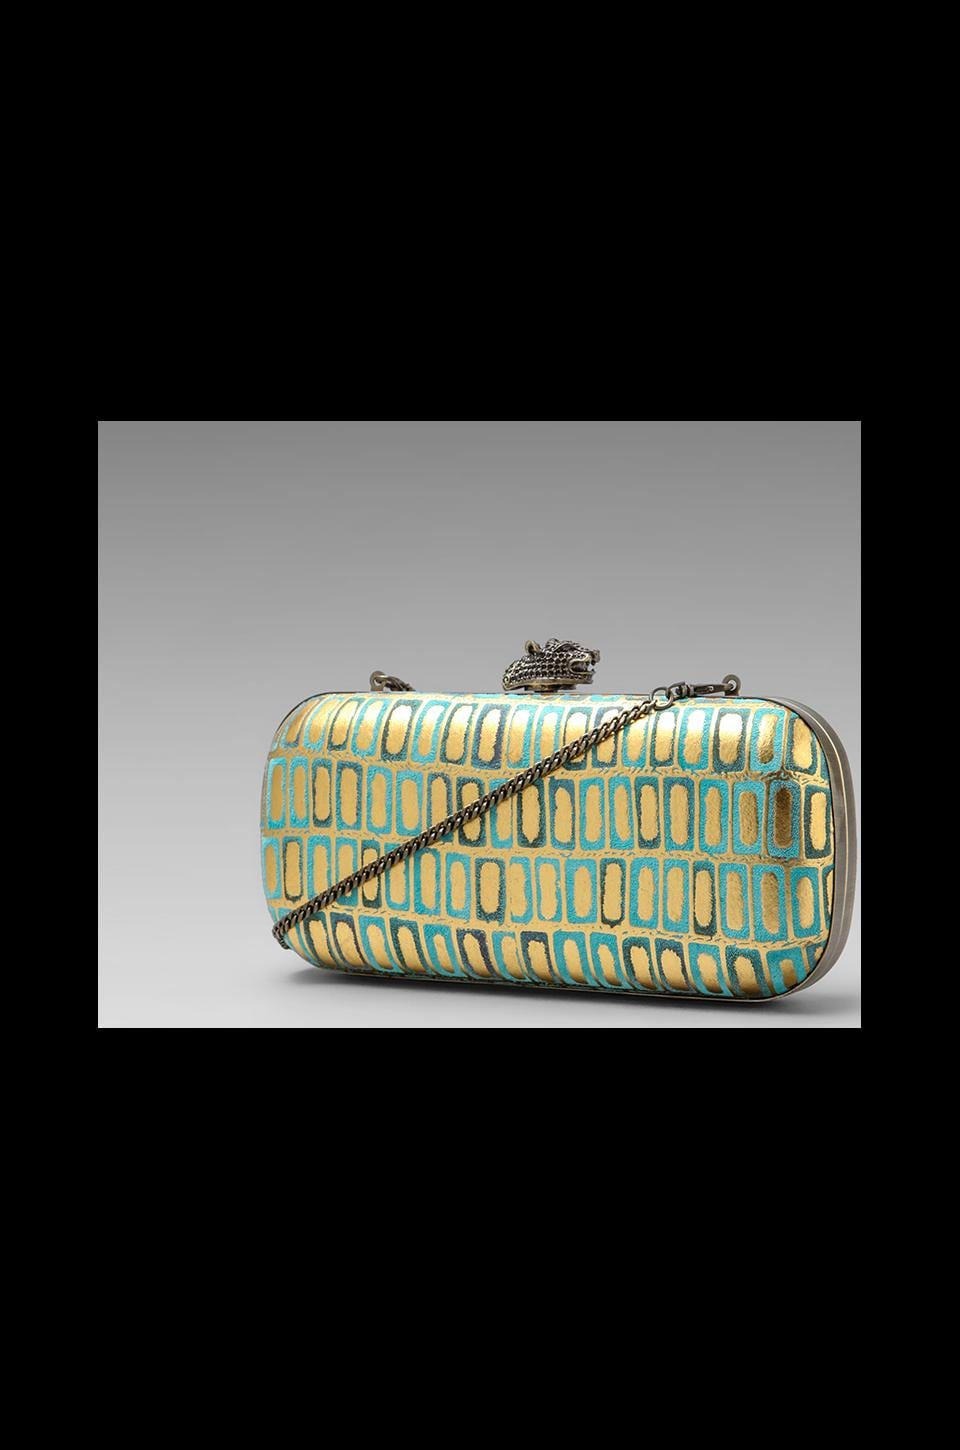 House of Harlow 1960 House of Harlow Addison Clutch in Turquoise/Gold